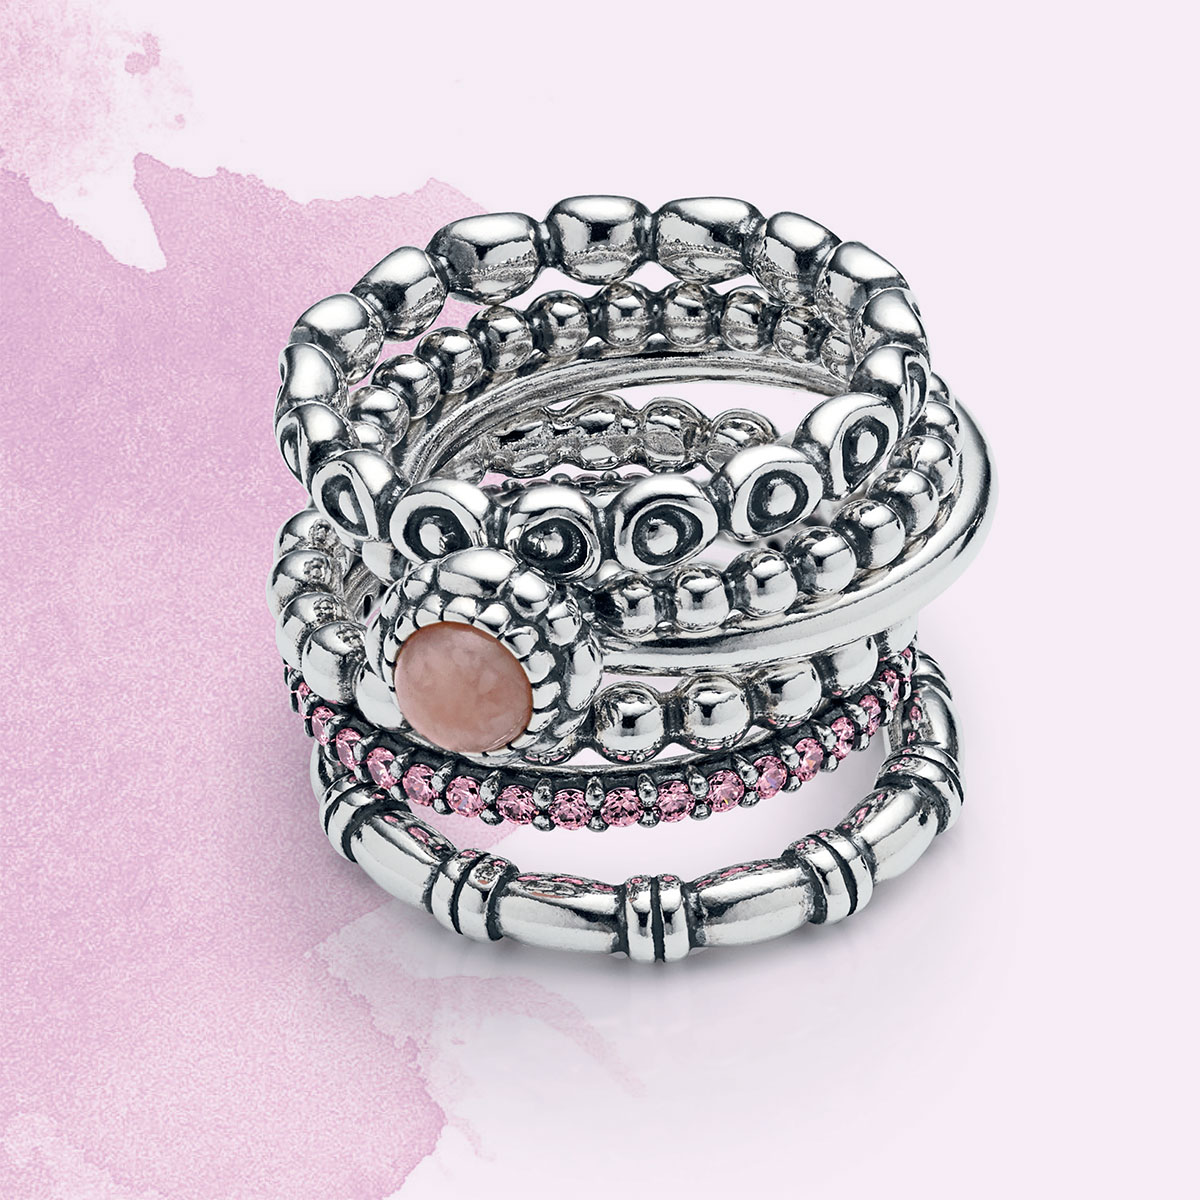 aa2a1a351 PANDORA Celebration Ring RETIRED ONLY 1 LEFT! - Mypanjewelry.com